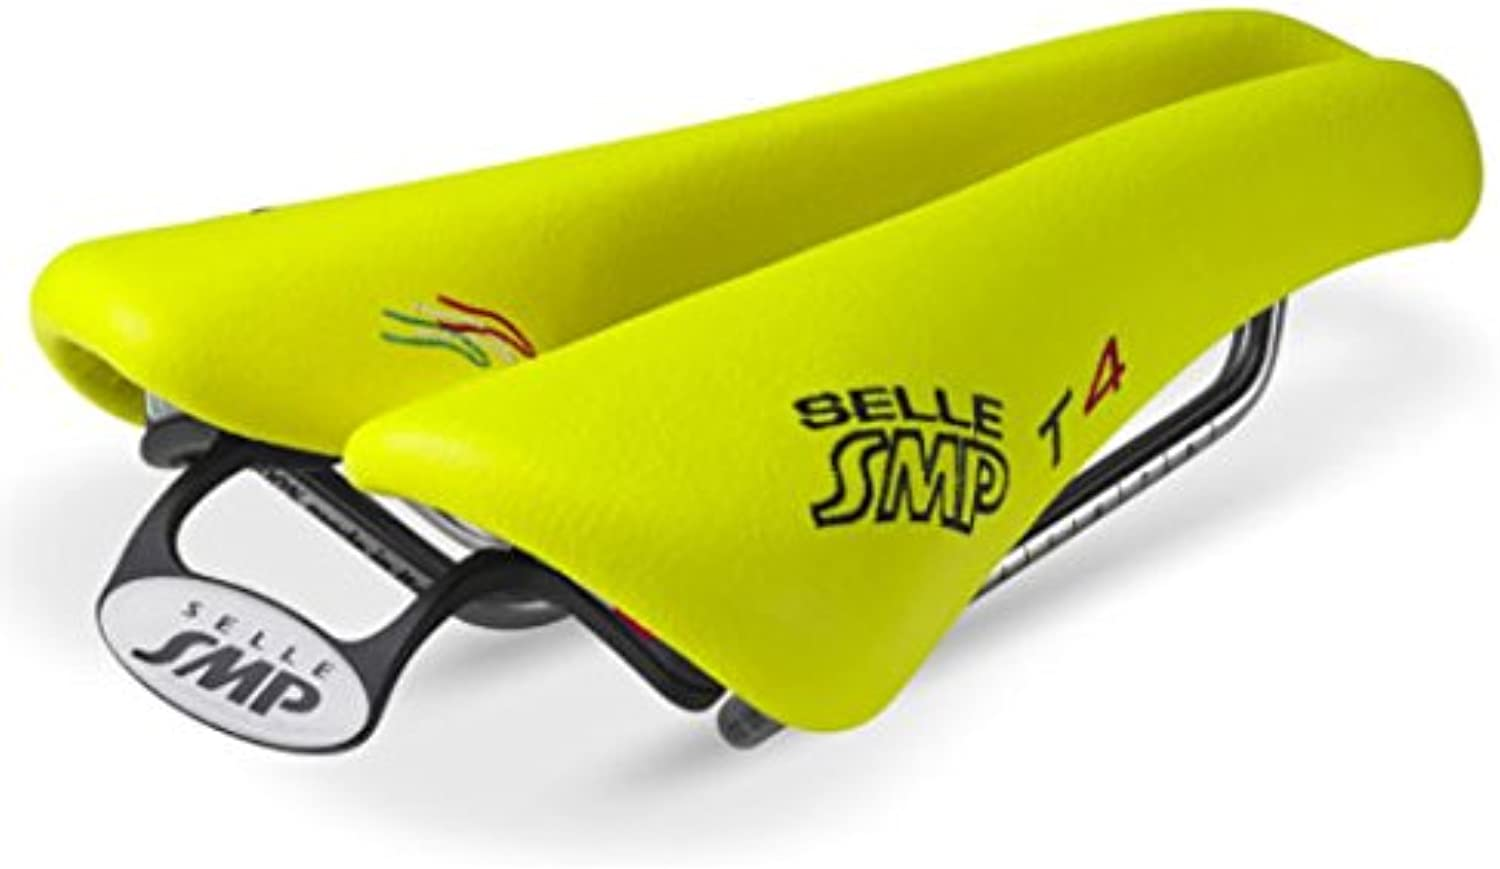 NEW Selle SMP TRIATHLON Bicycle Saddle Seat  T4 Fluorescent Yellow. . . Made in